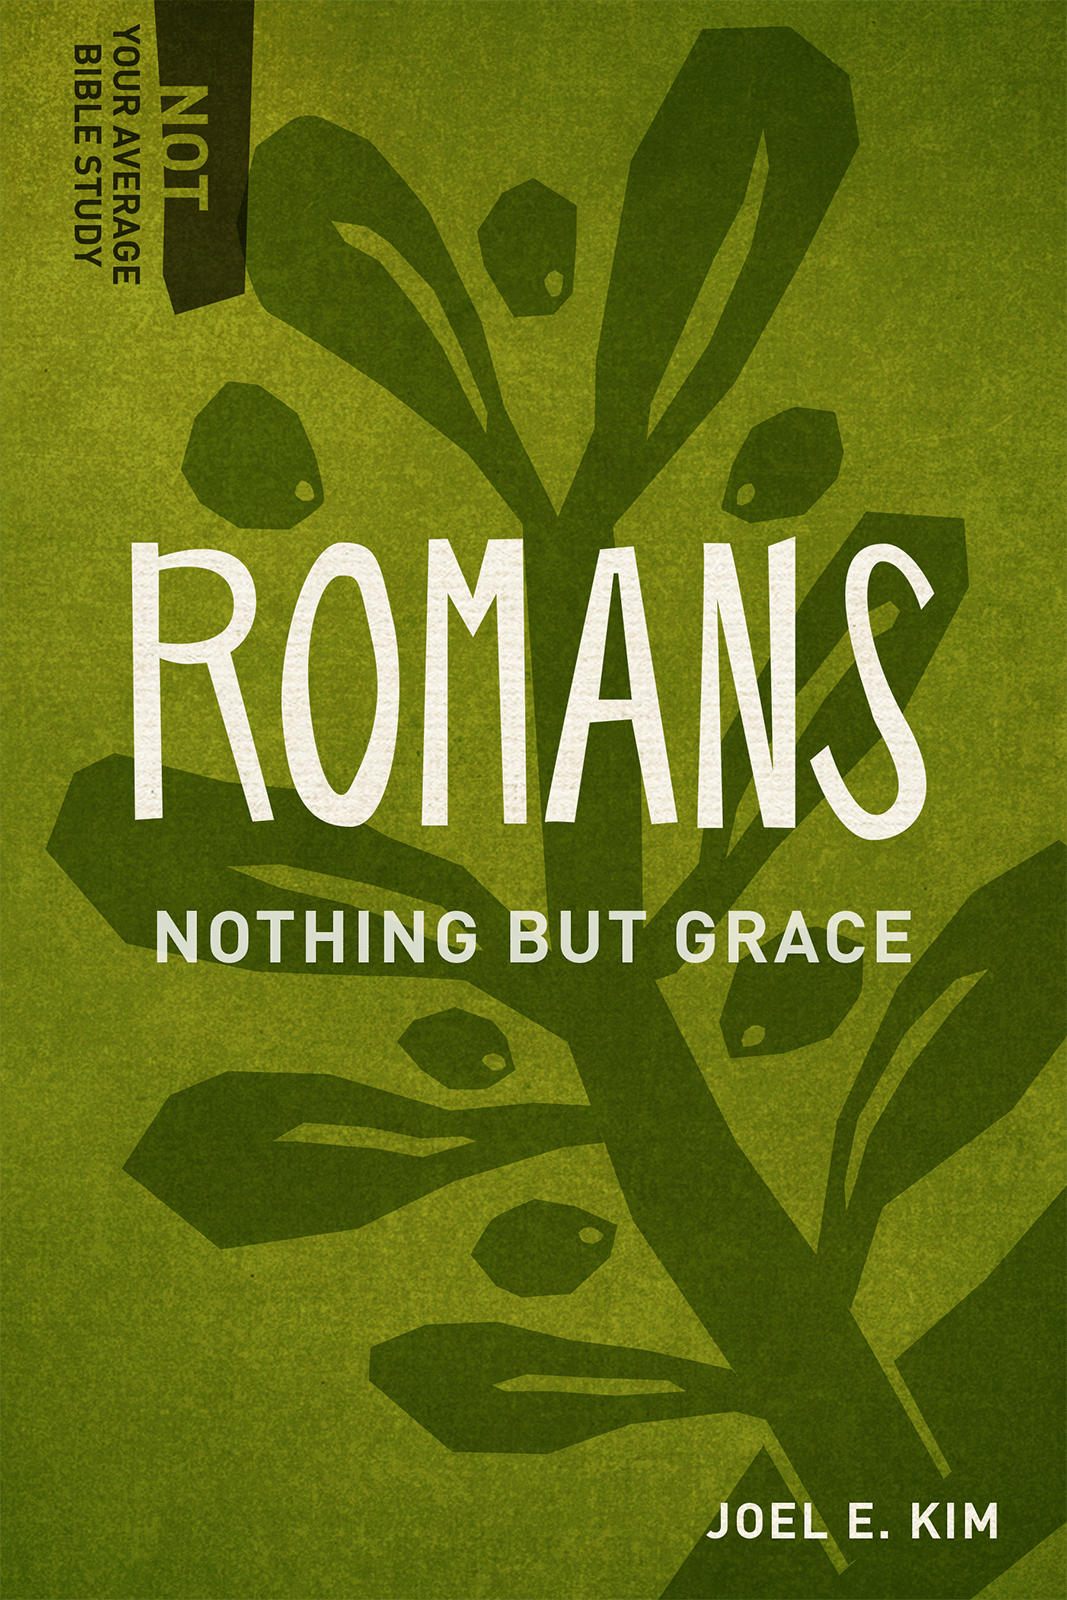 Romans: Nothing but Grace (Not Your Average Bible Study)